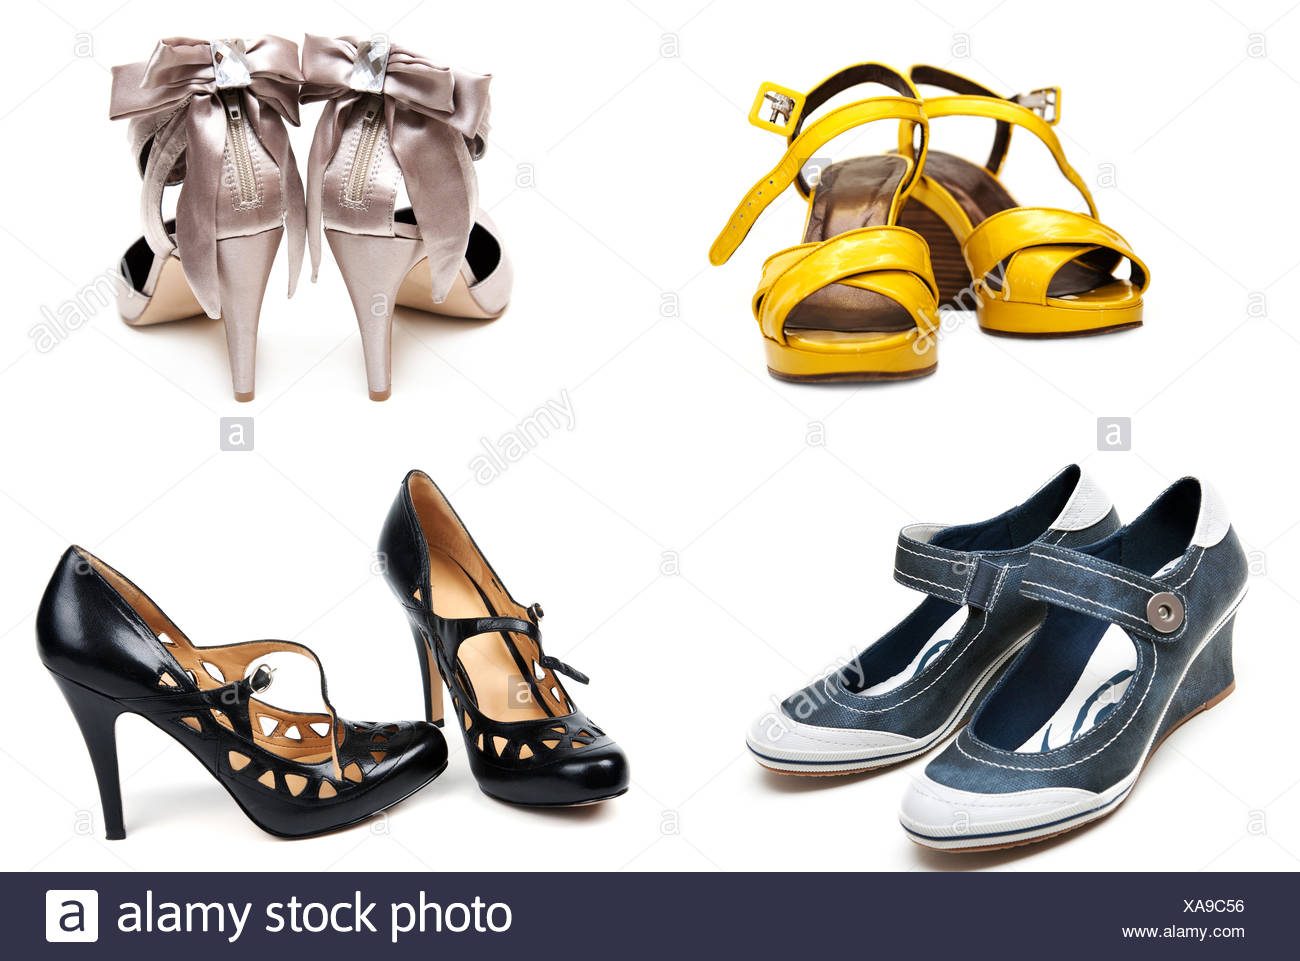 68ccc378db Collage from four pairs feminine loafers Stock Photo  281719570 - Alamy